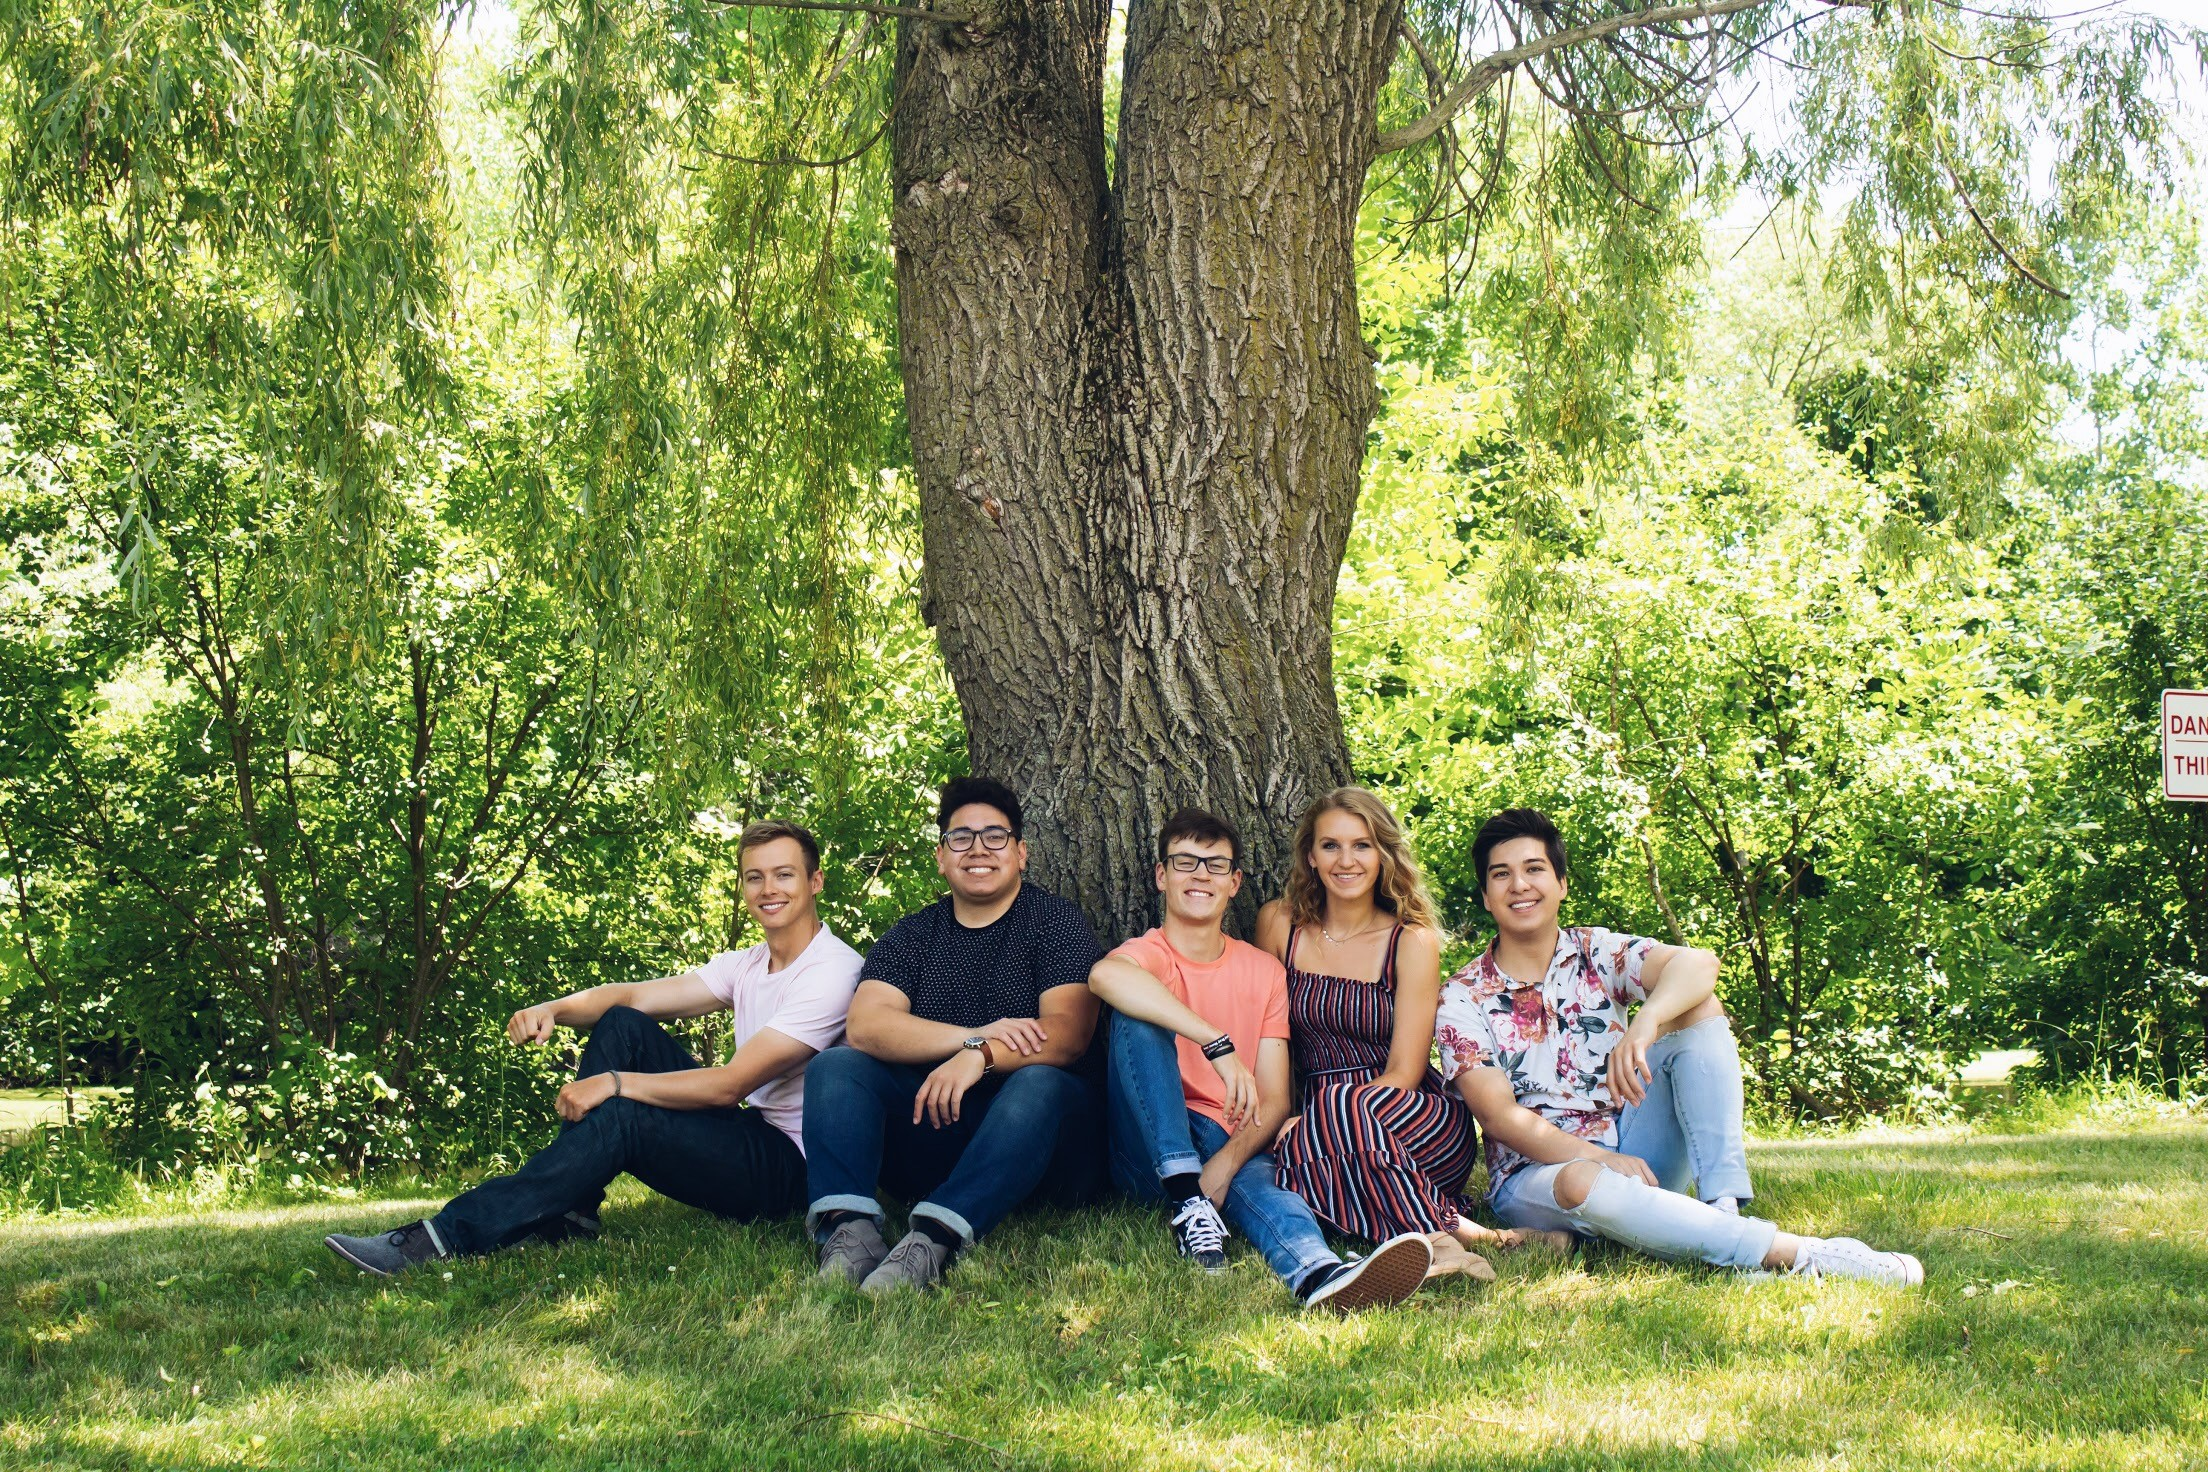 About Collide - Collide is a dynamic, new presence in the A Cappella scene. Formed by five Colorado natives in 2017, the members of Collide feature tight harmonies, one-of-a-kind pop covers, and a youthful energy.